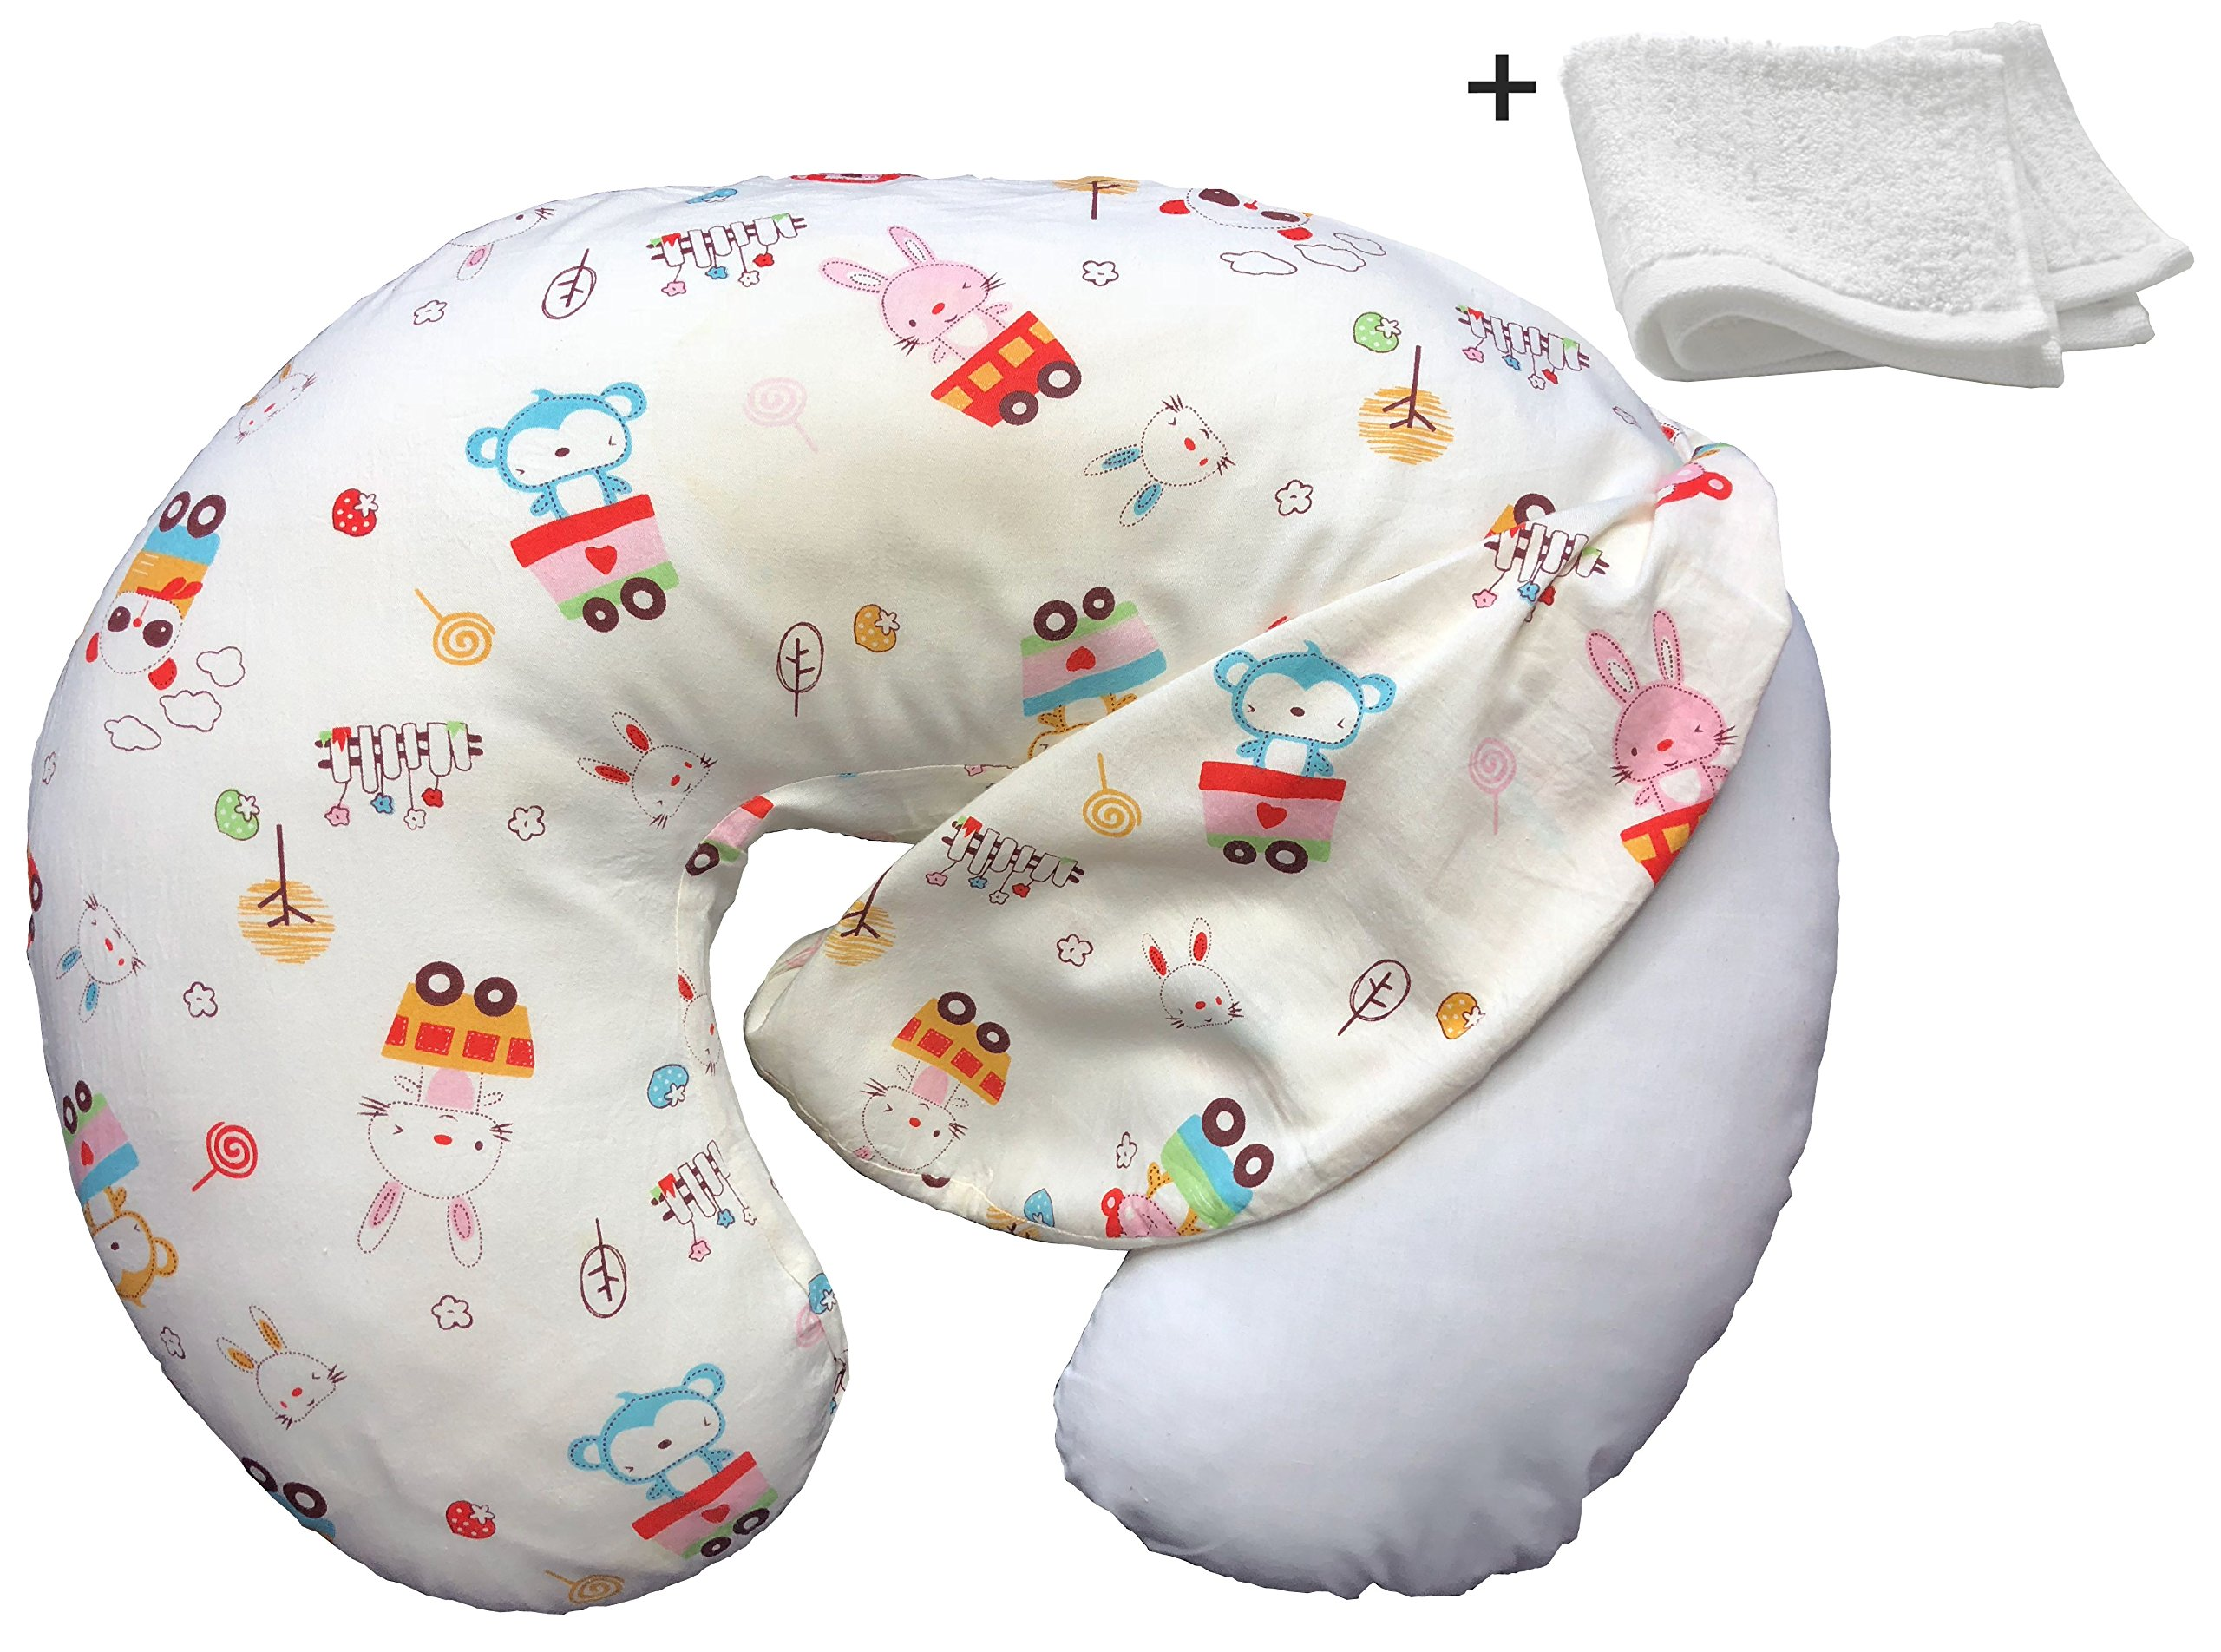 Nursing Pillow Cover Hypoallergenic for Newborn Girls and Boys, Breastfeeding Moms Slipcover Cushion Case + Soft Washcloth + Digital Bedtime Story by Mafflo